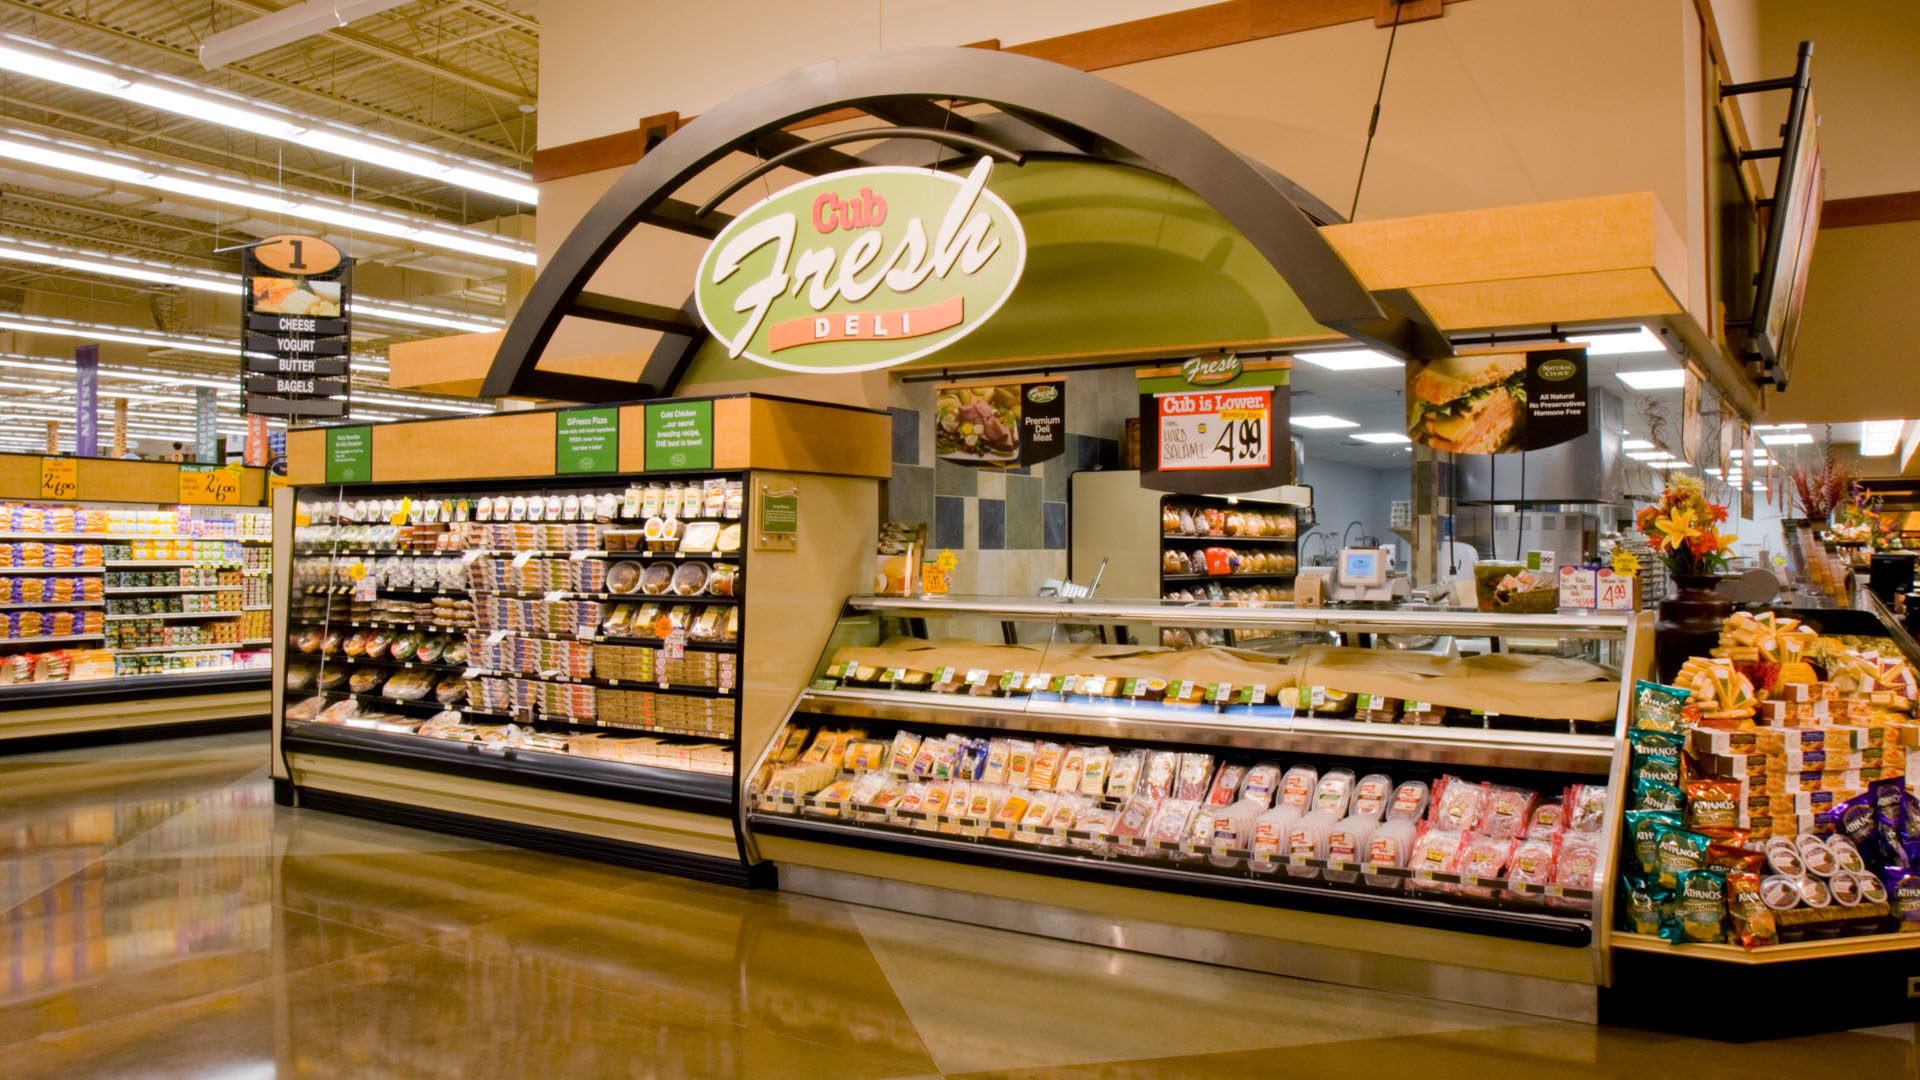 Cub Foods Phalen Grocery Store Interior Deli Counter